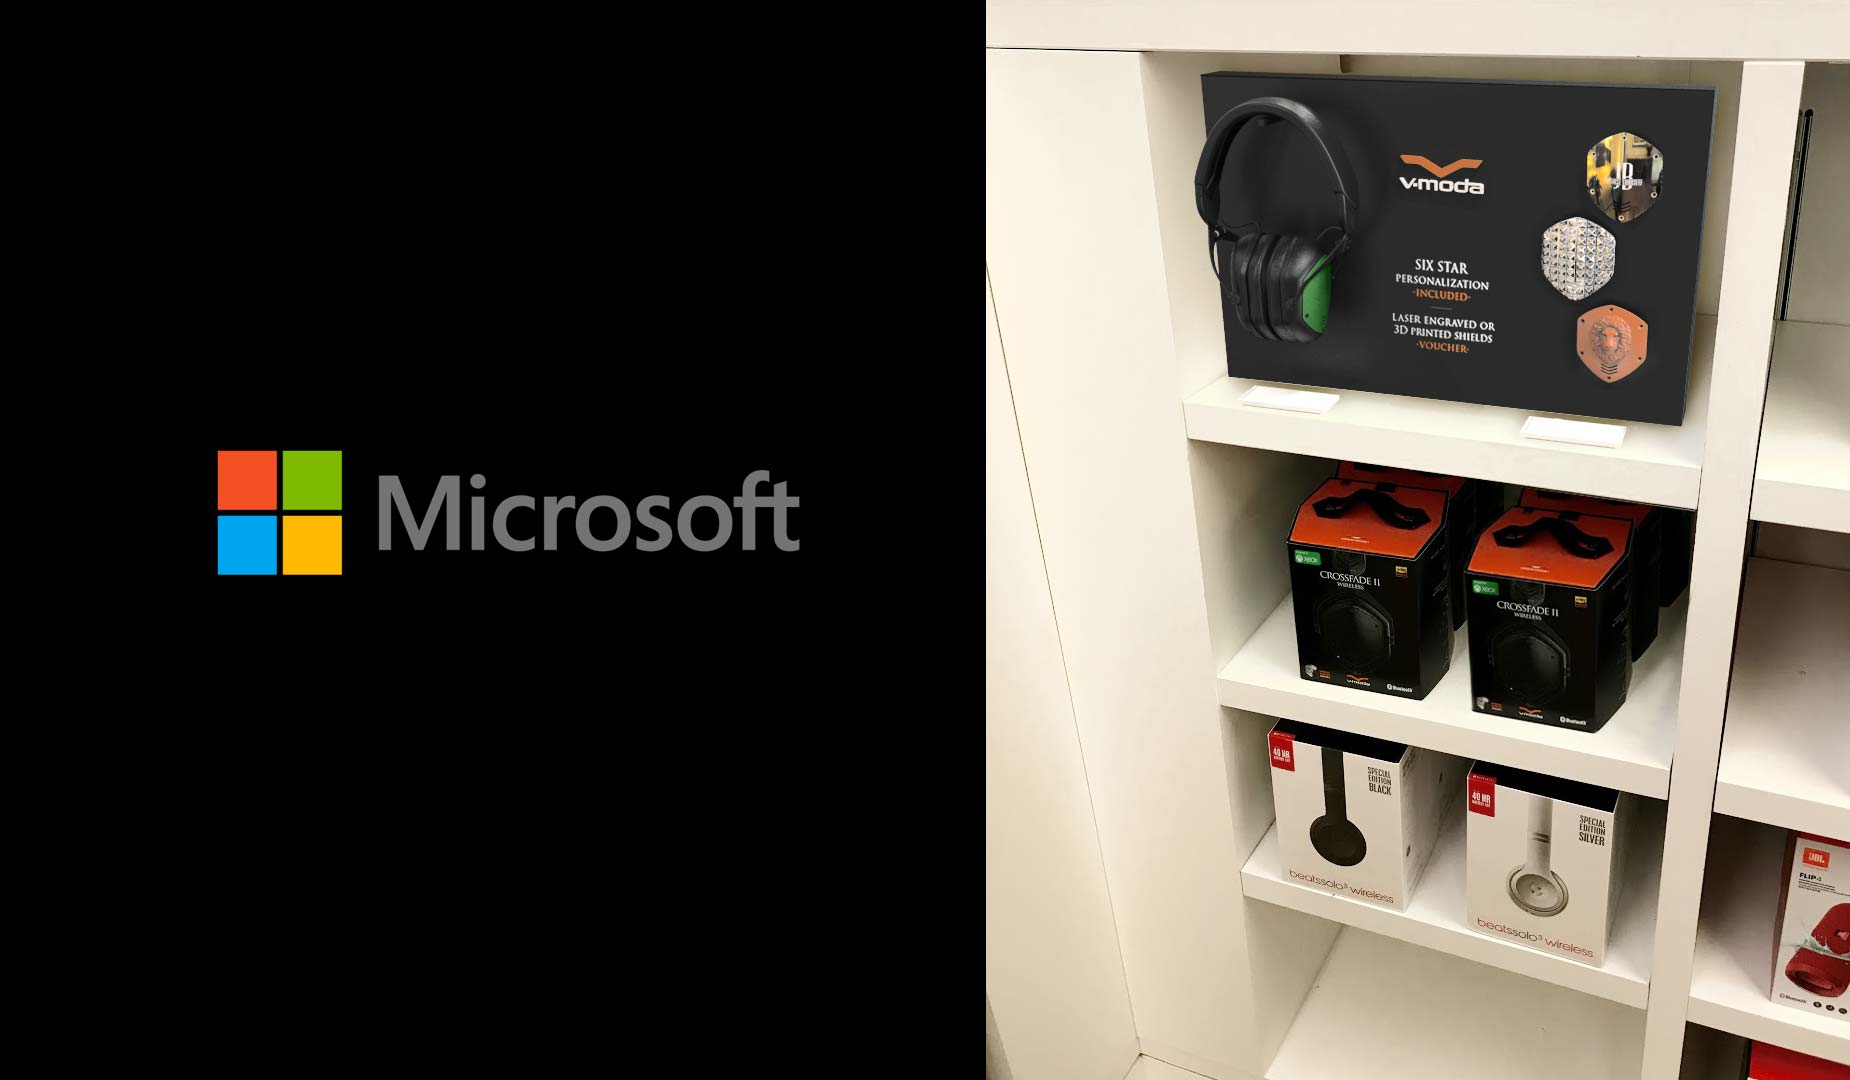 Microsoft Product Placement Store Display Cubby Close UP